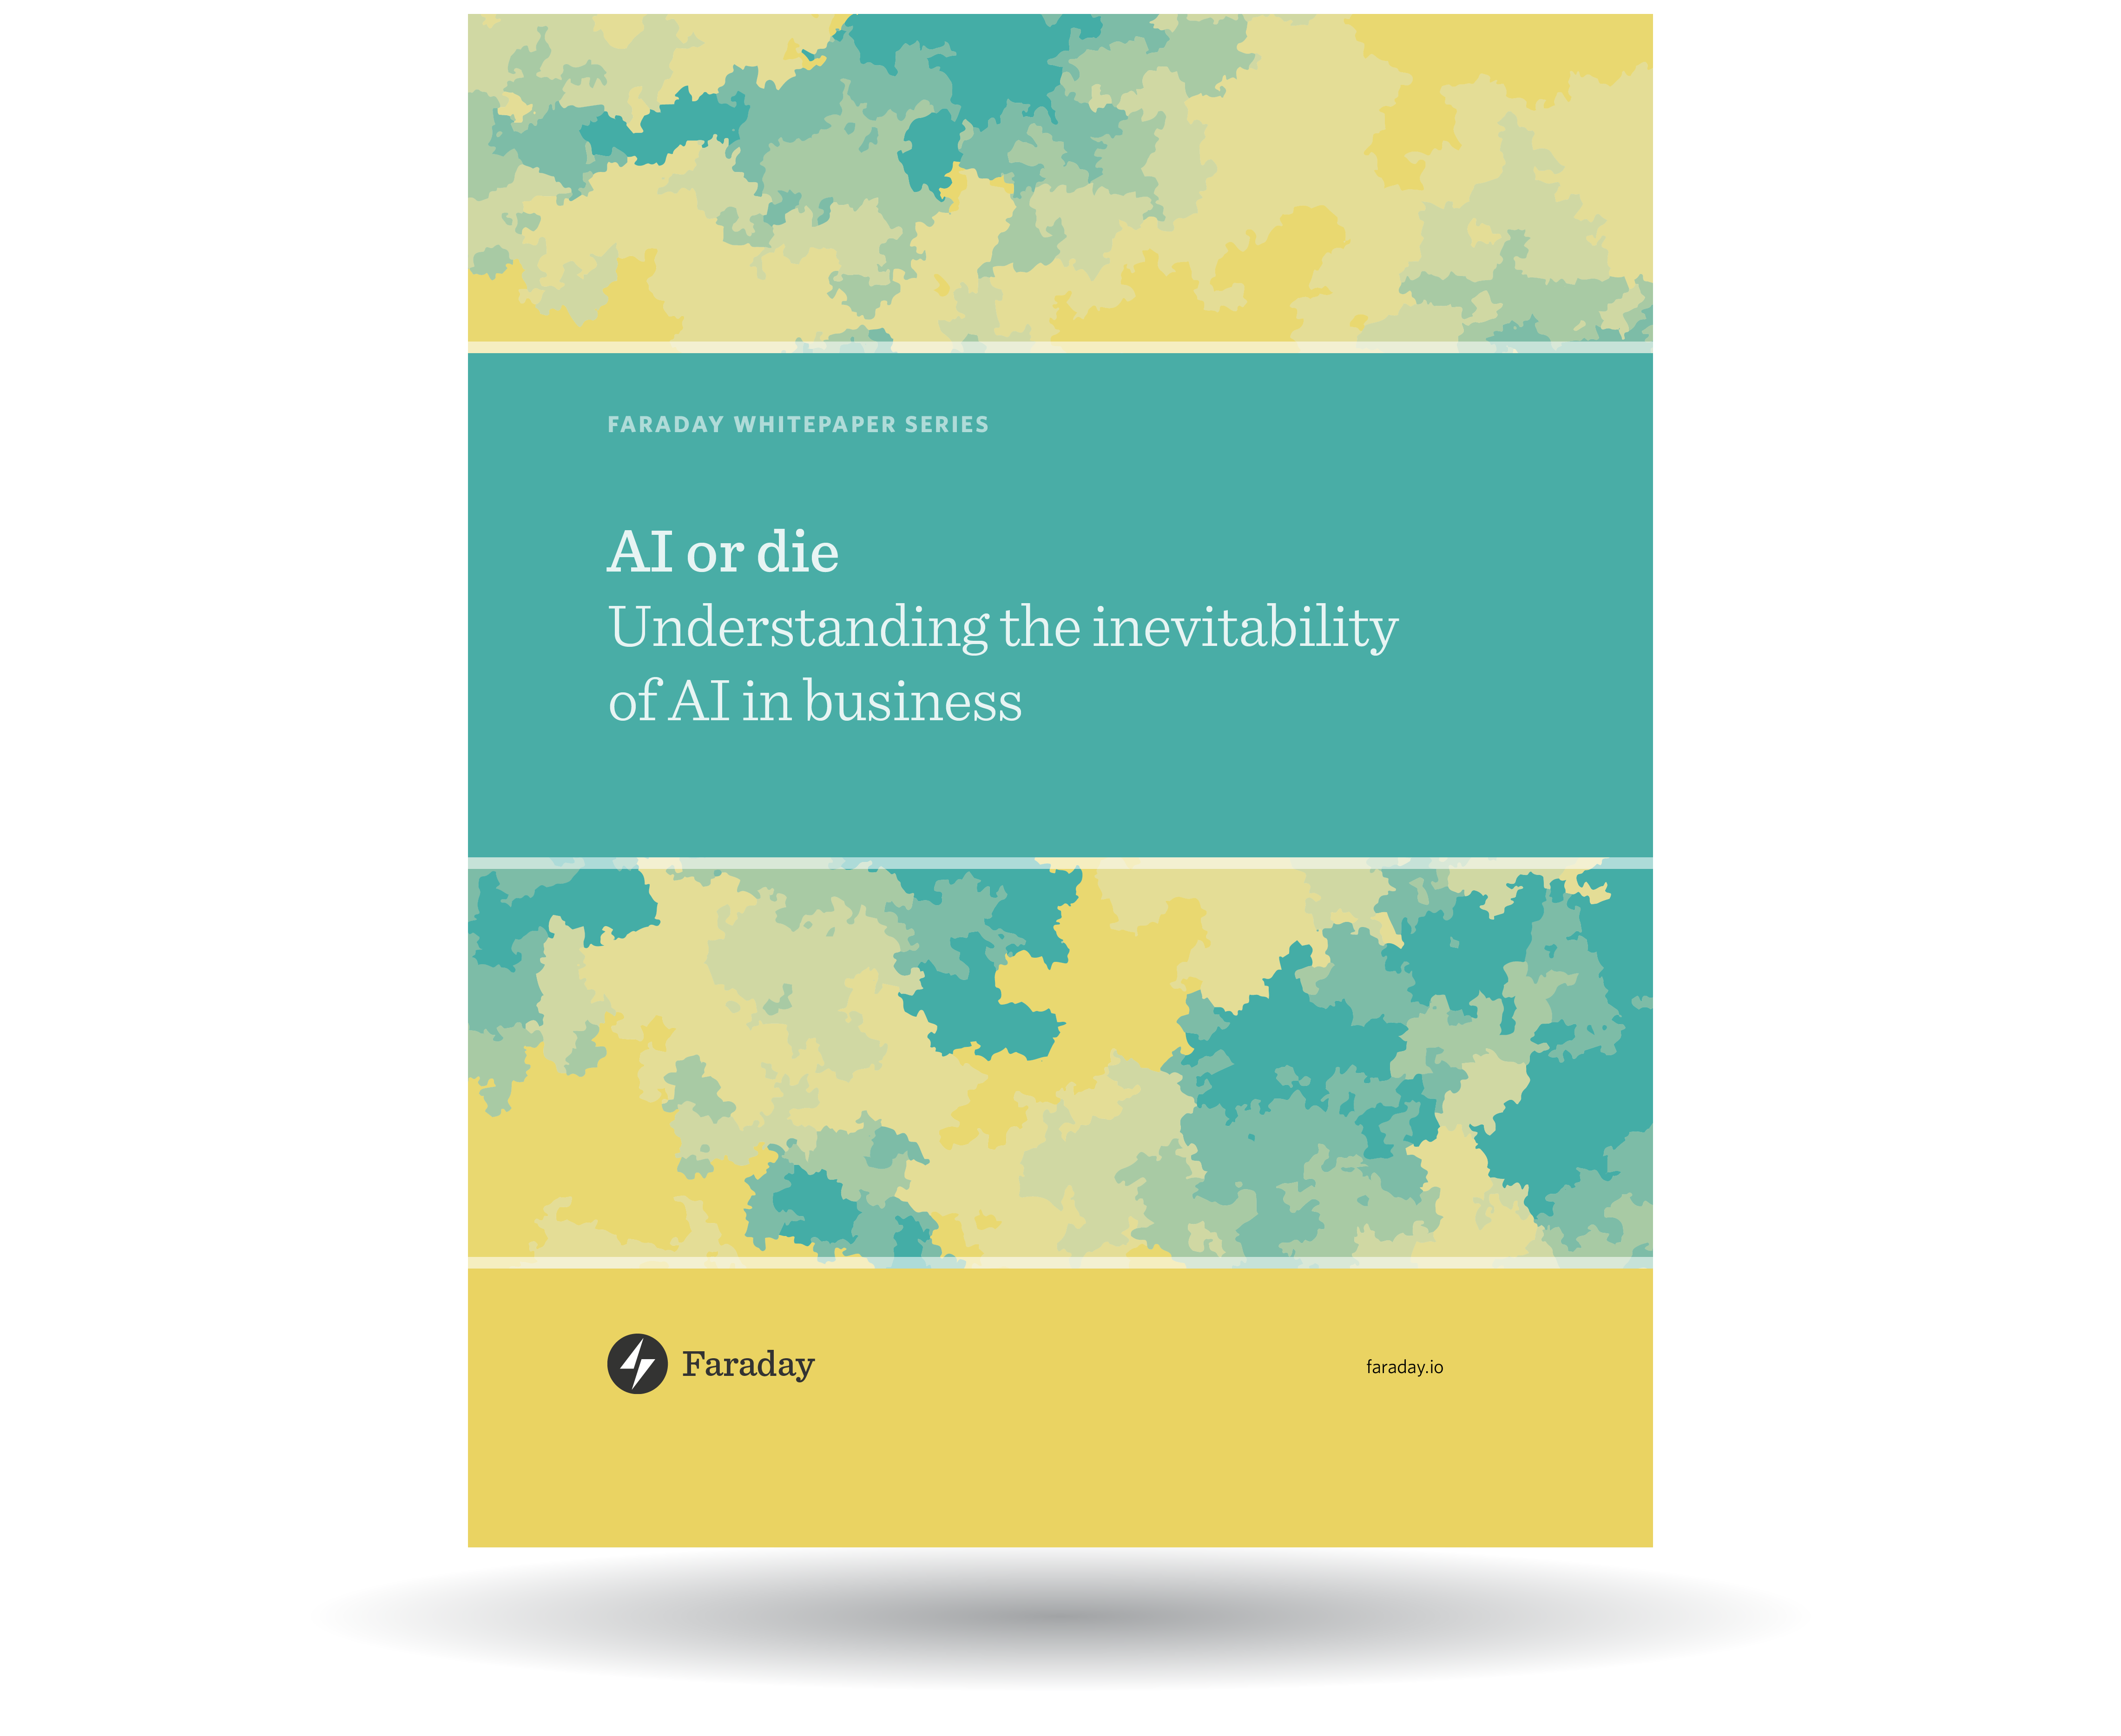 AI or die: Understanding the inevitability of AI in business